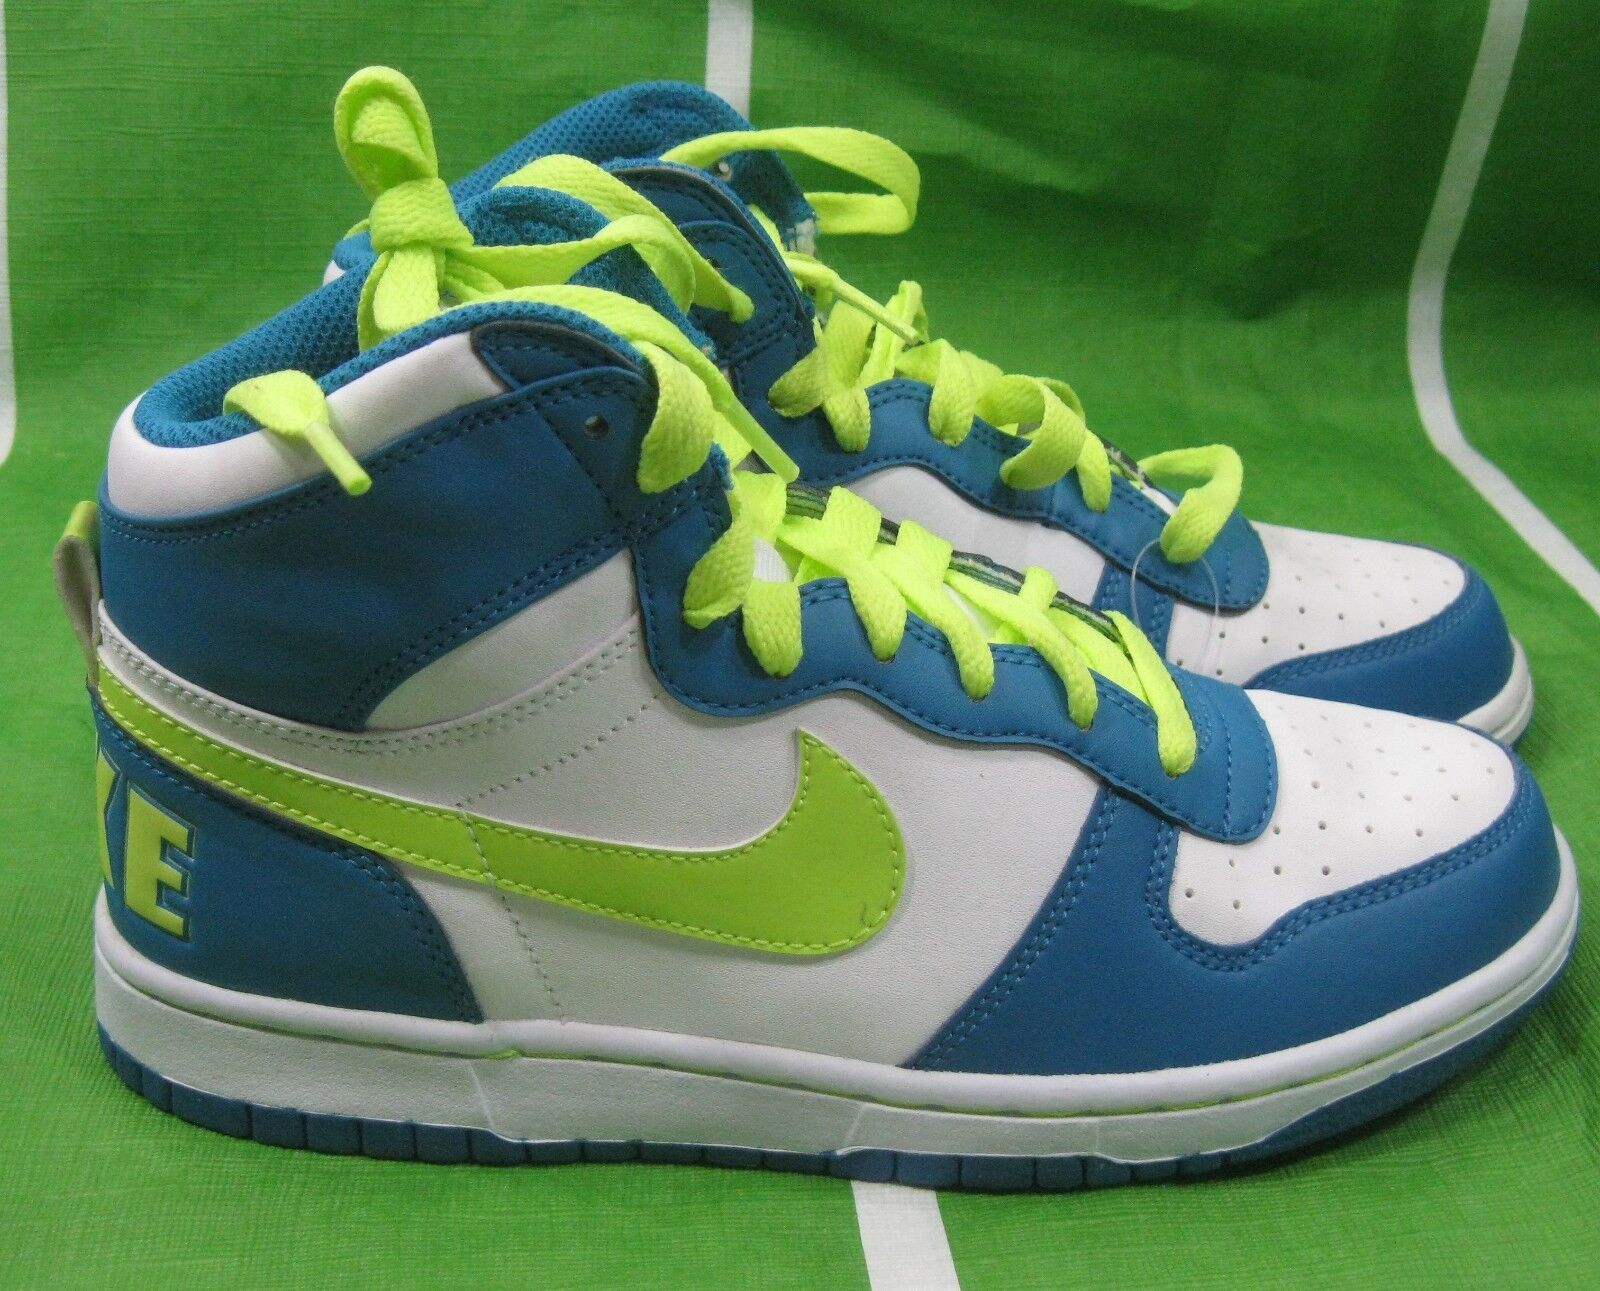 Big Nike High 358858-171 Blue Volt Sneakers Shoes Size 7.5